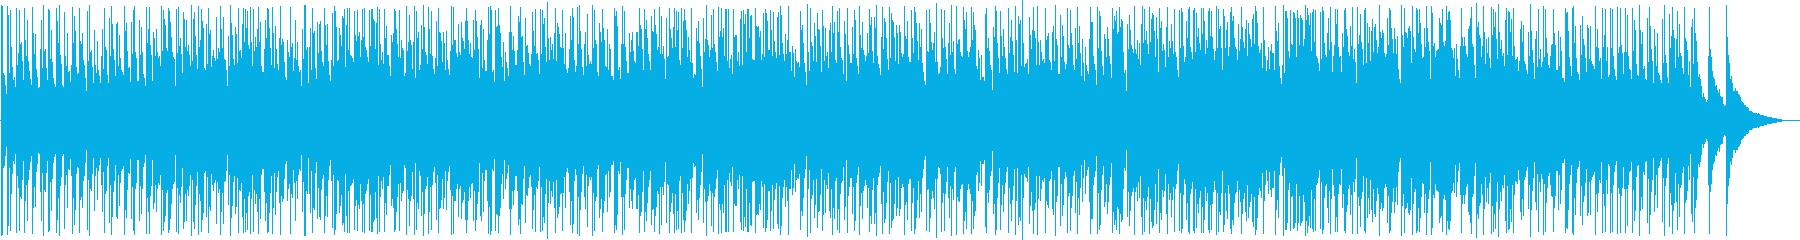 Toh-in / Okinawa folk song's reproduced waveform